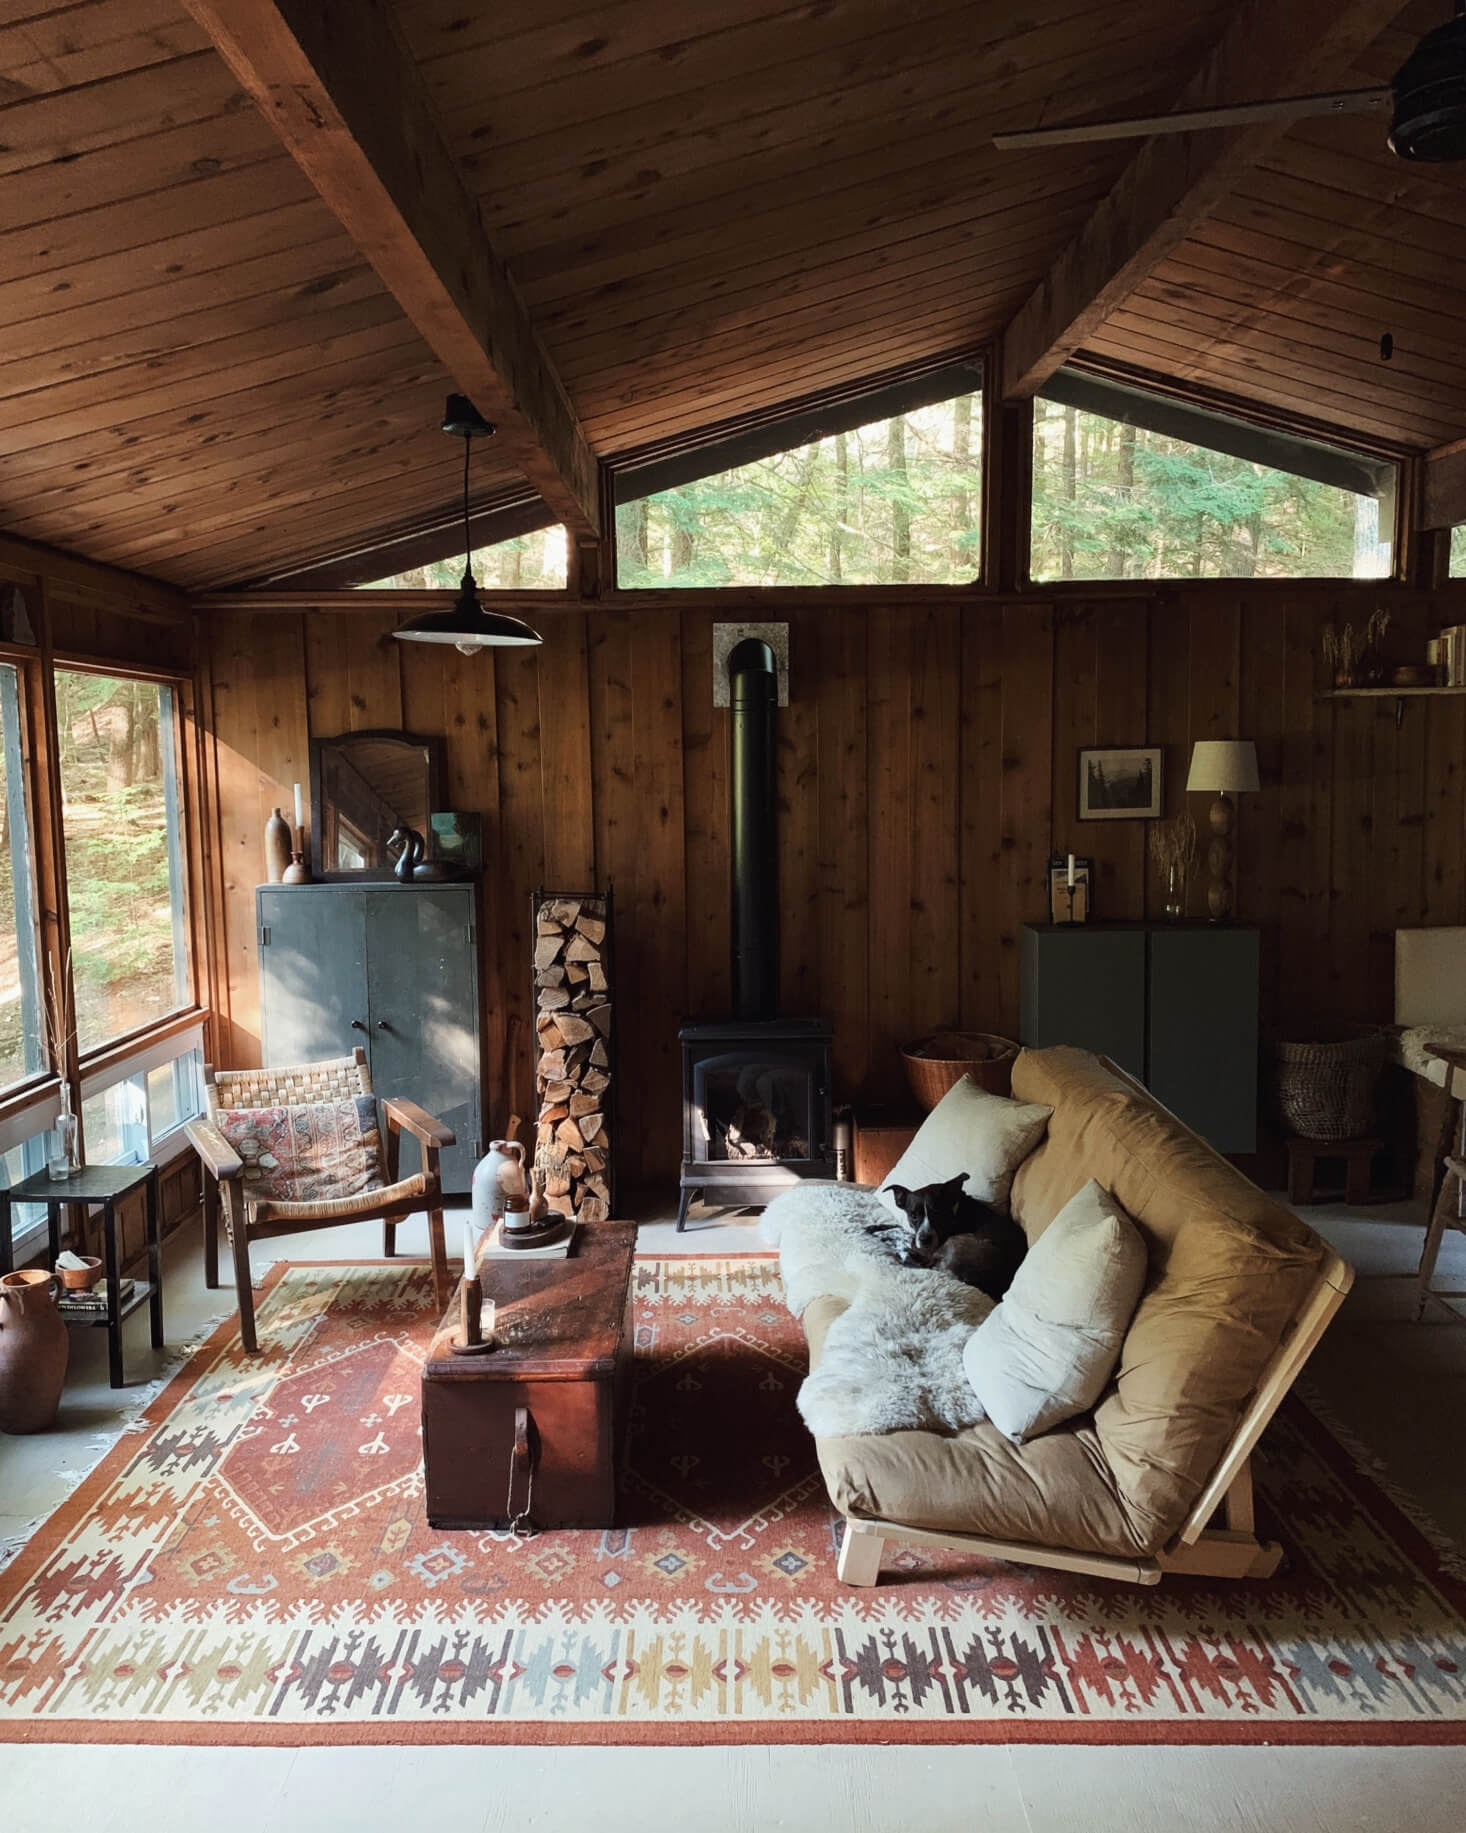 A Cabin in the Woods by Forestbound Founder Alice Saunders